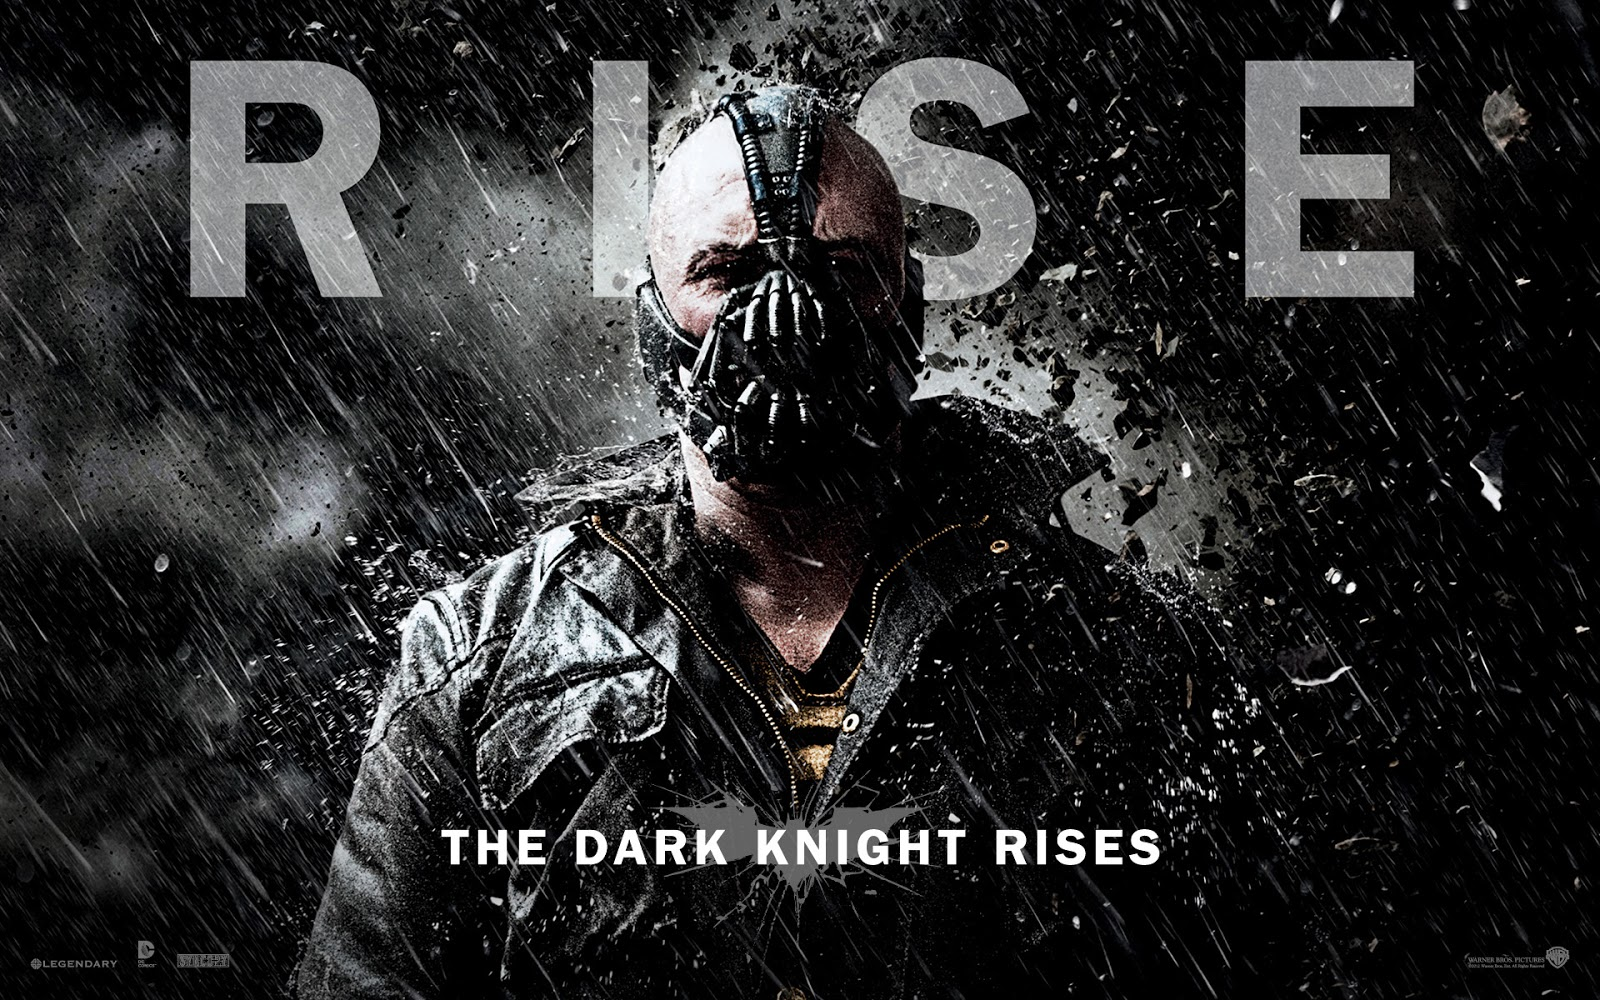 http://1.bp.blogspot.com/--X5TO2RzT0I/UPlGYAN74qI/AAAAAAAACTs/RekF4z3q558/s1600/The-Dark-Knight-Rises-official-wallpapers-10.jpg